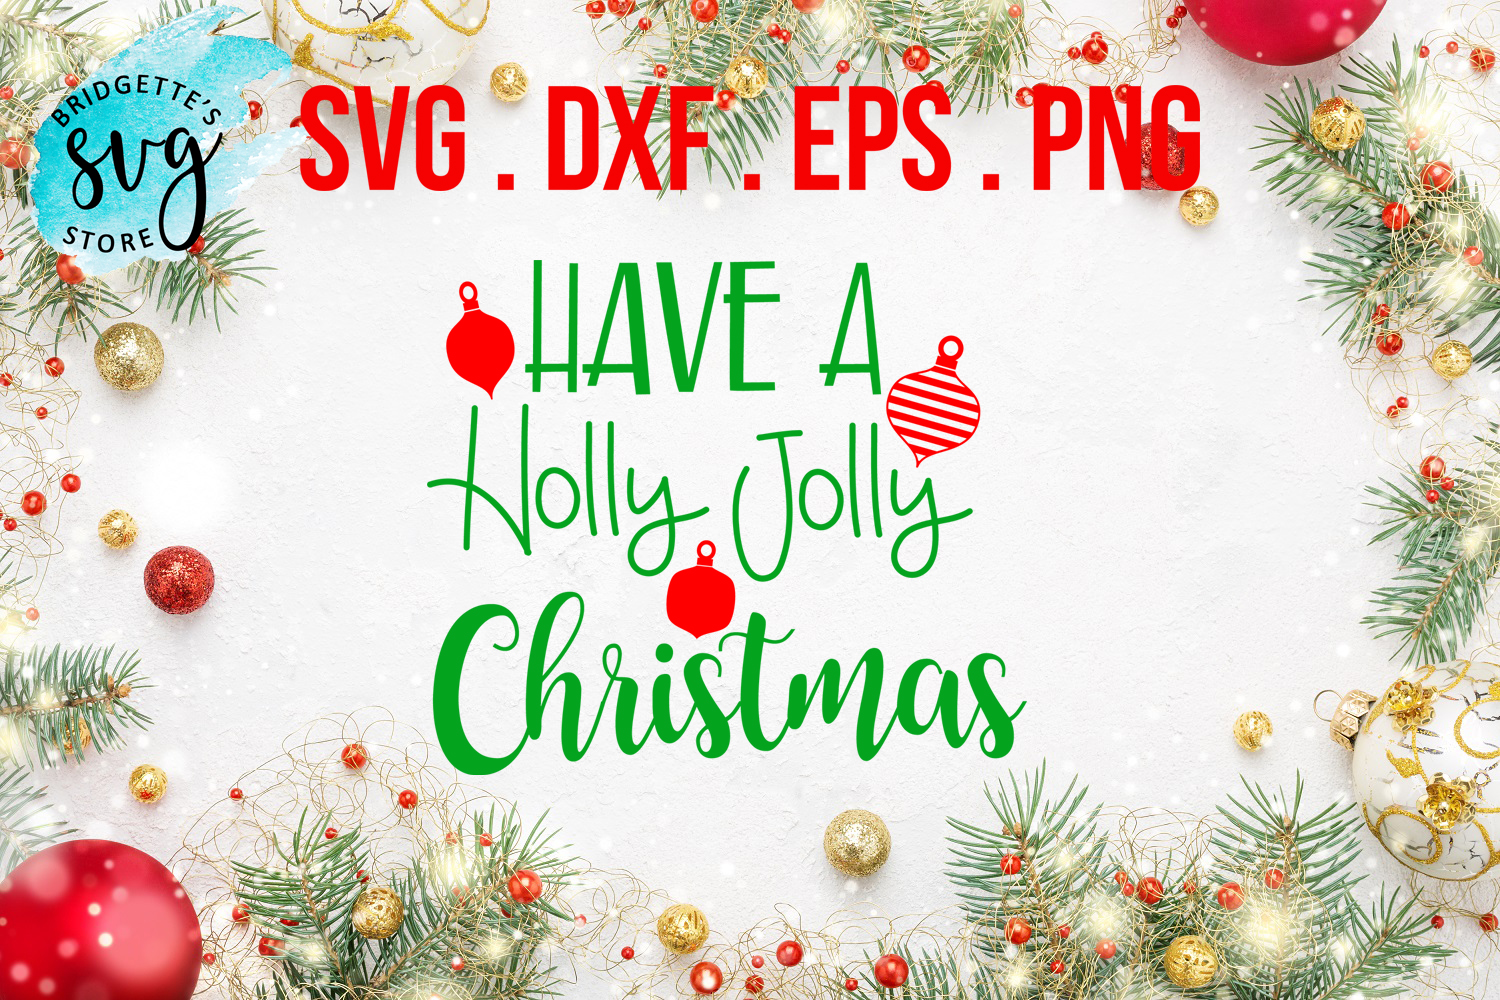 Have A Holly Jolly Christmas SVG, DXF, PNG, EPS File example image 1